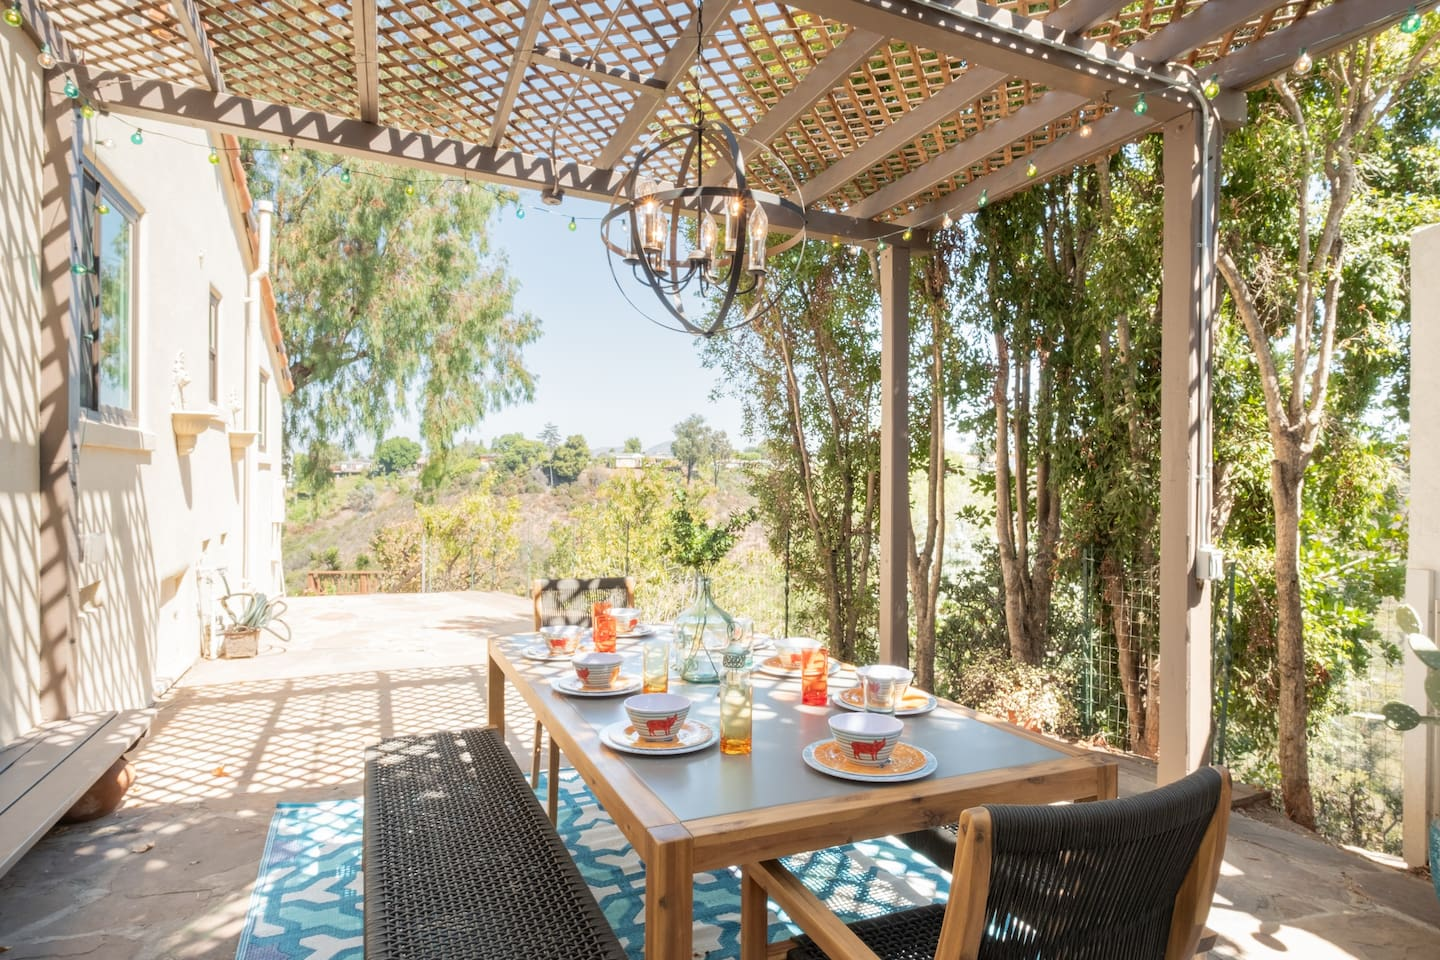 San Diego Airbnb. Located in Balboa Park